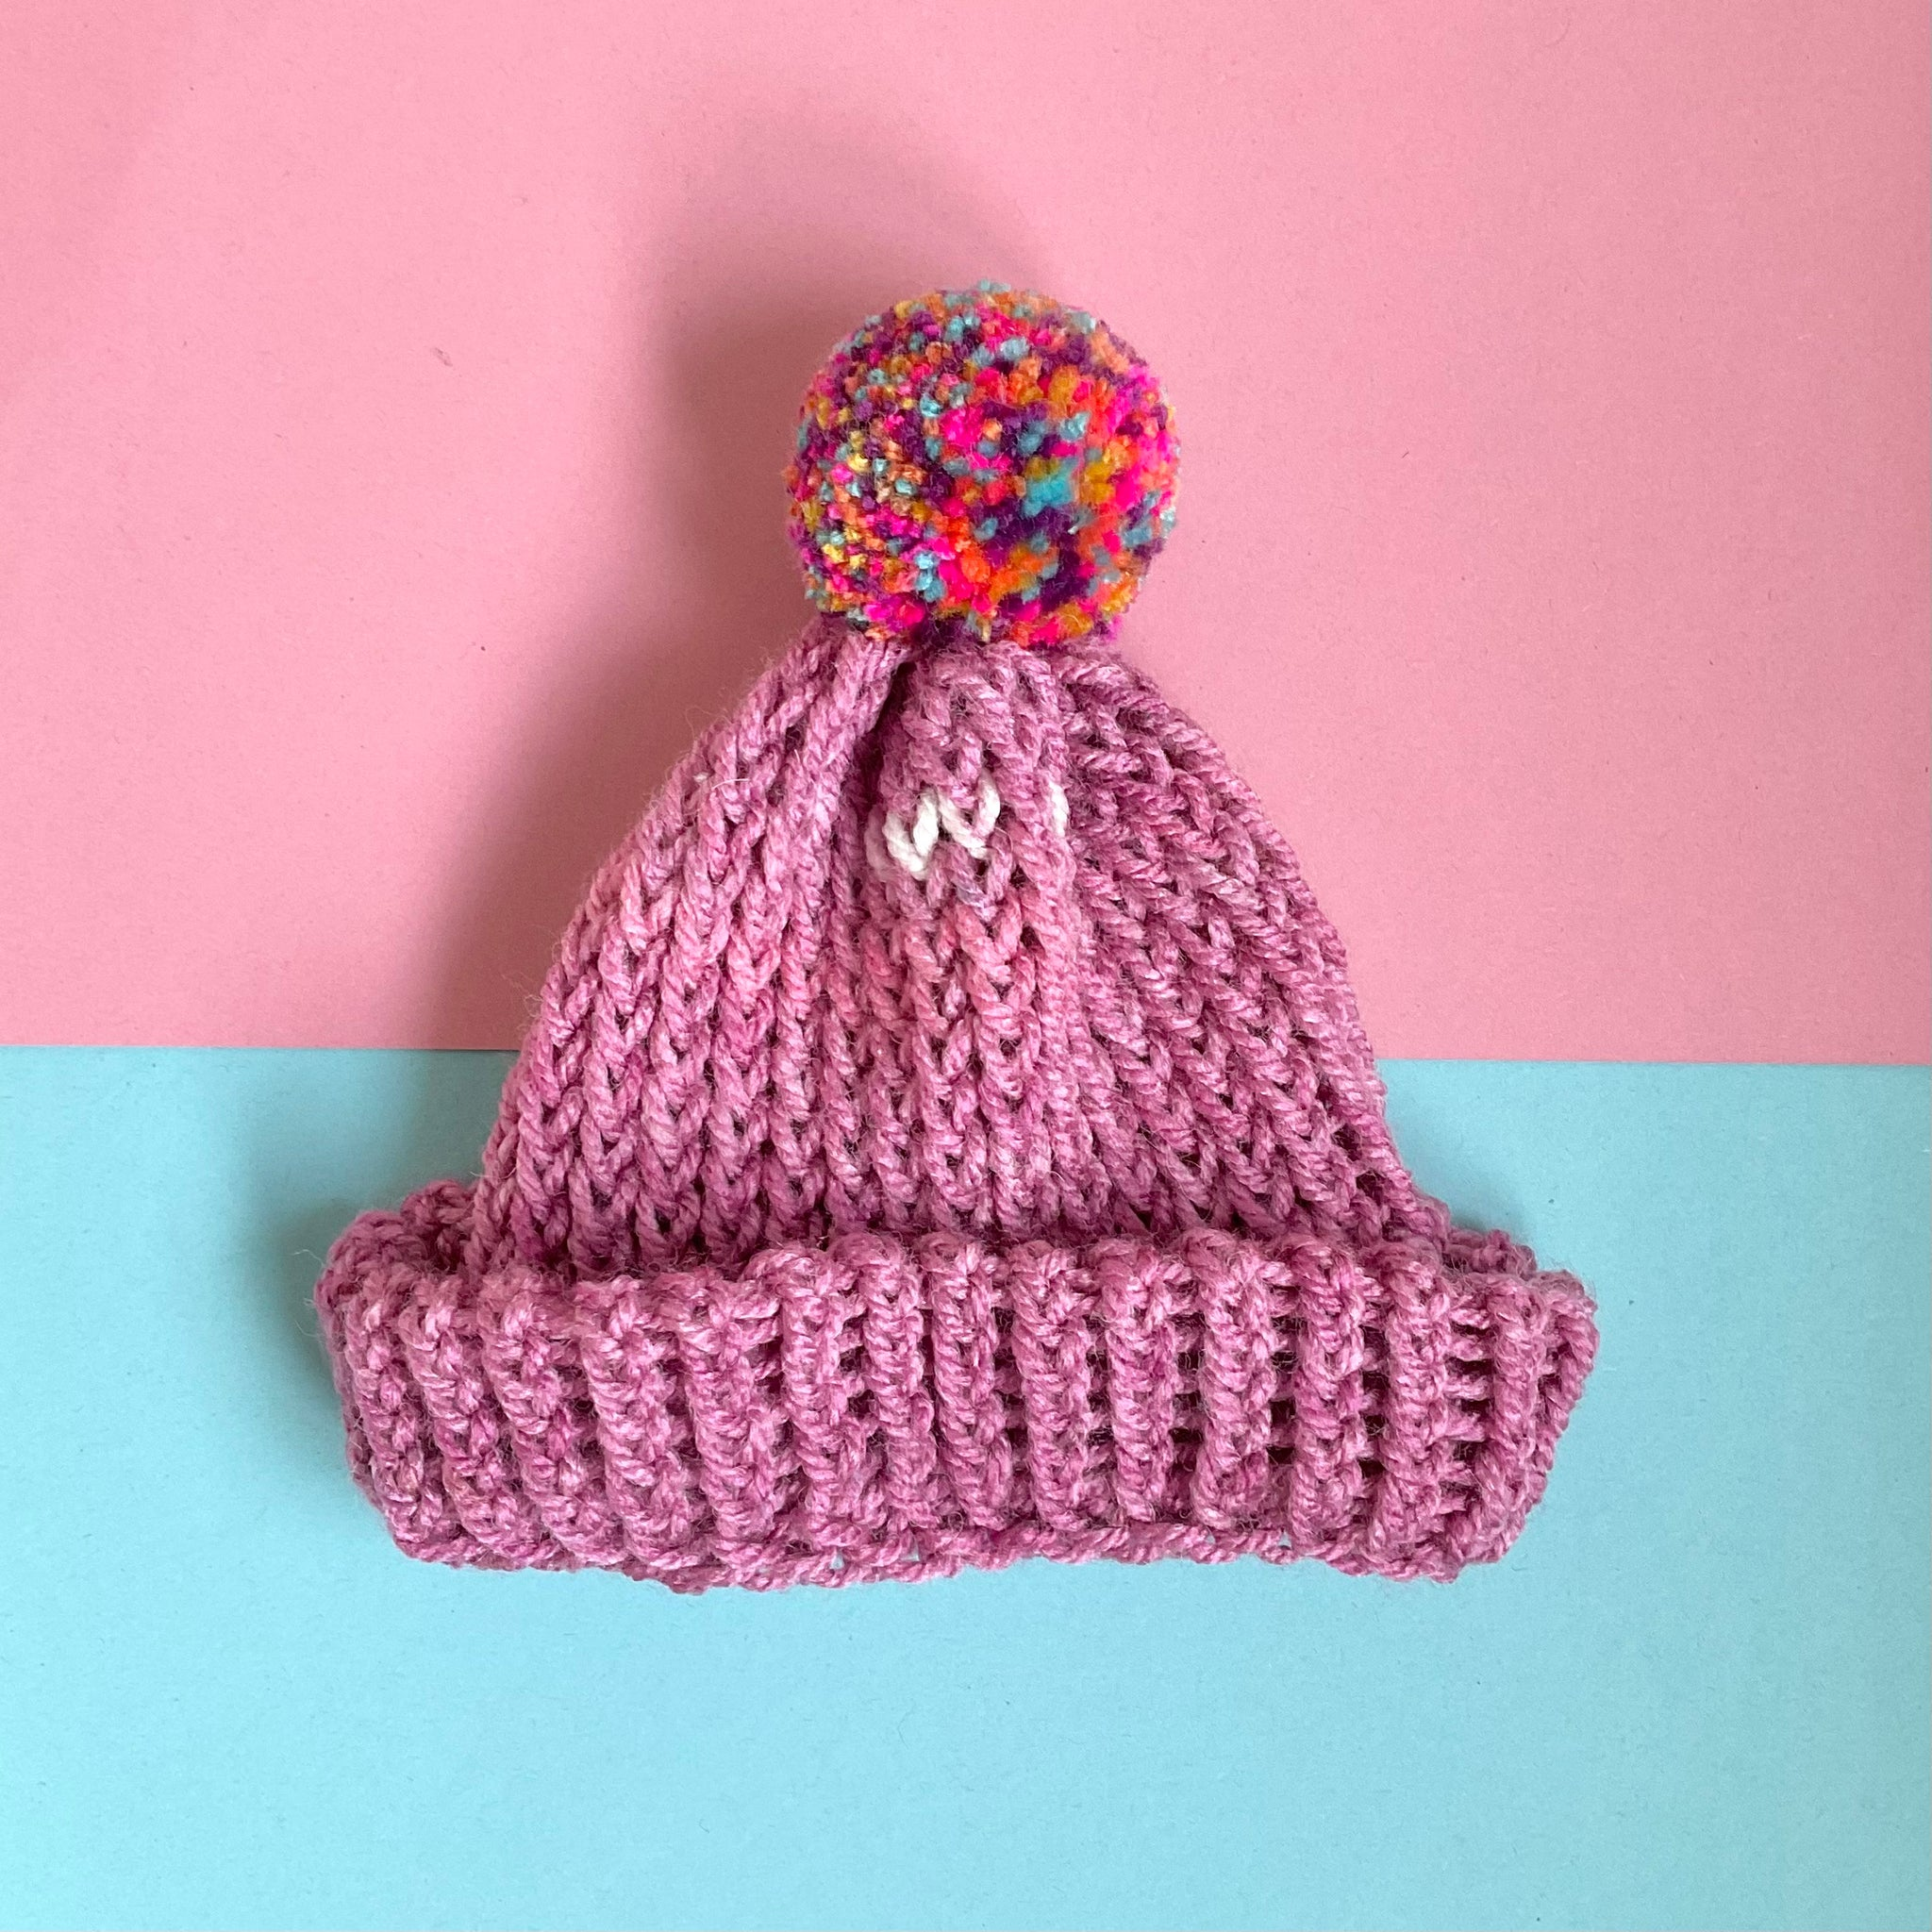 Loom Knitted Hats - Small